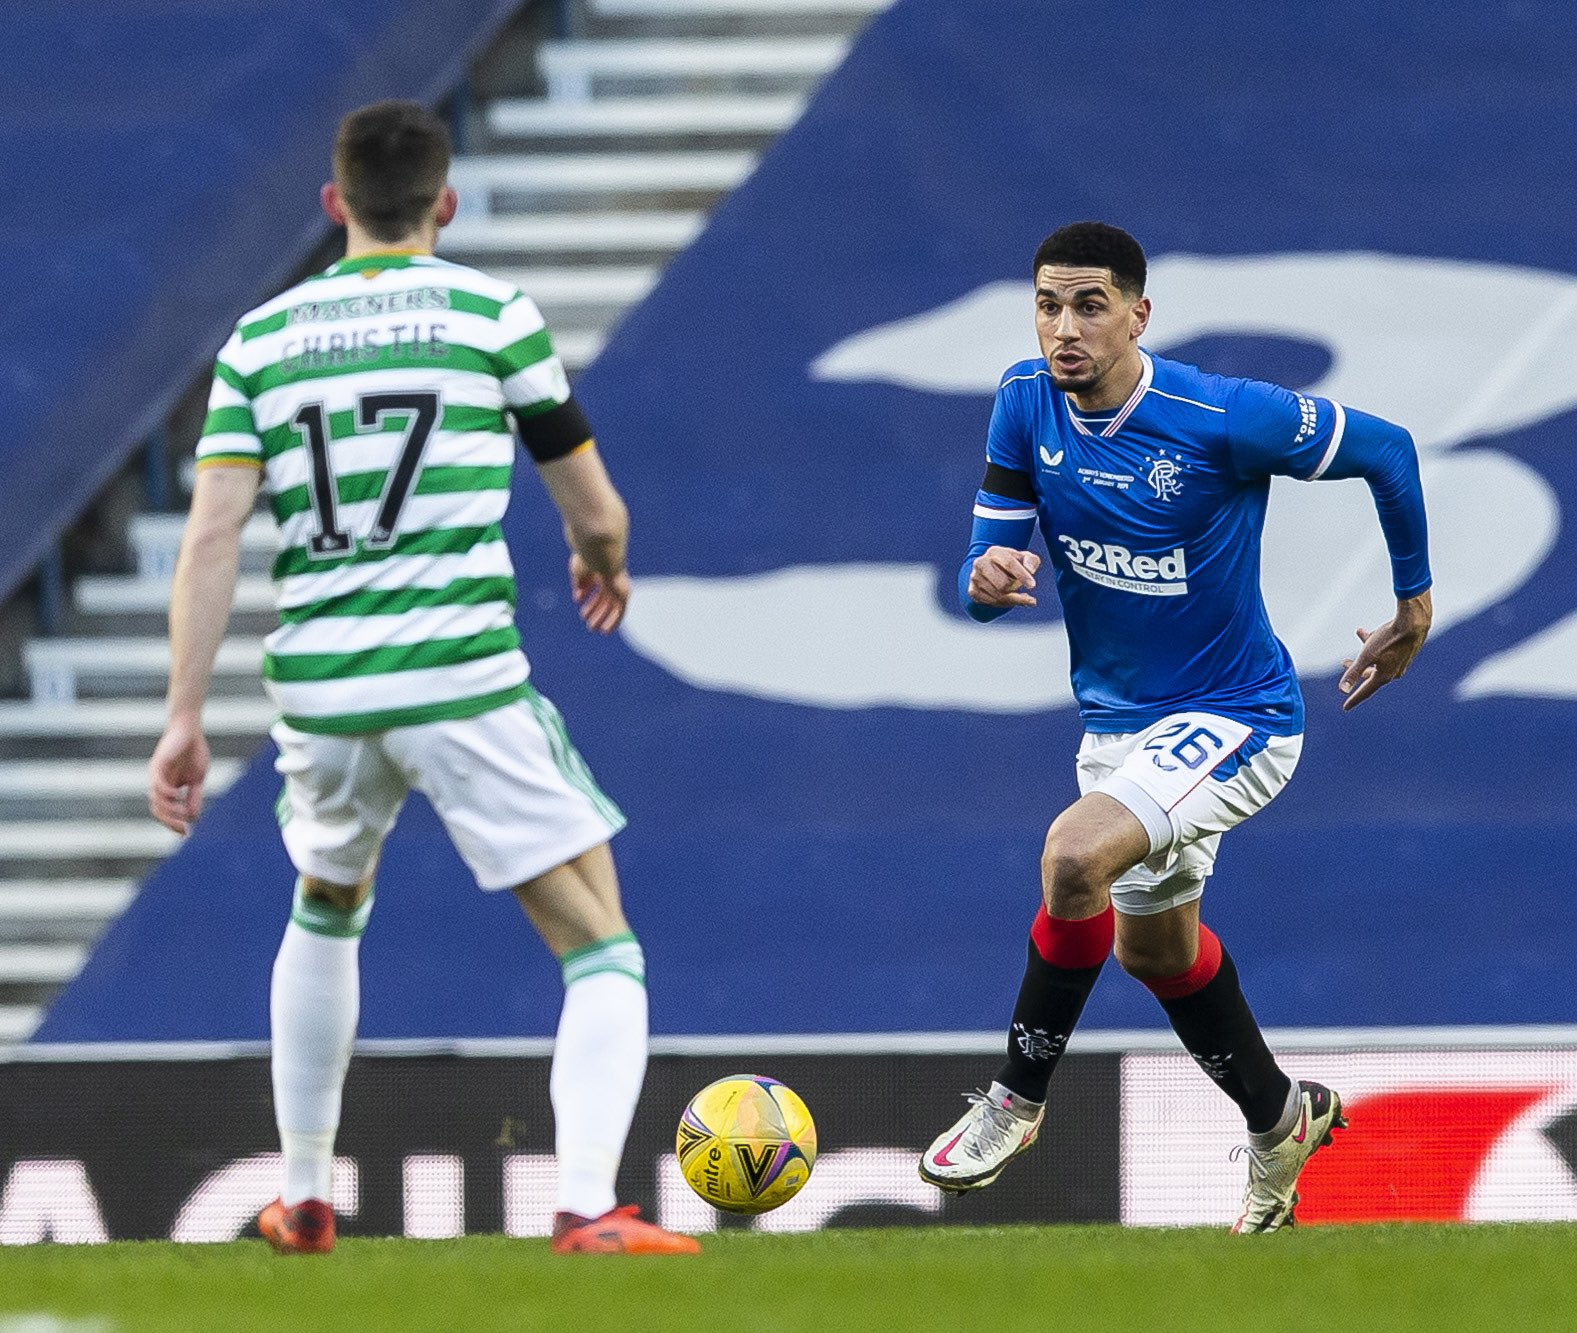 Balogun happy to start new year on a positive note with Rangers